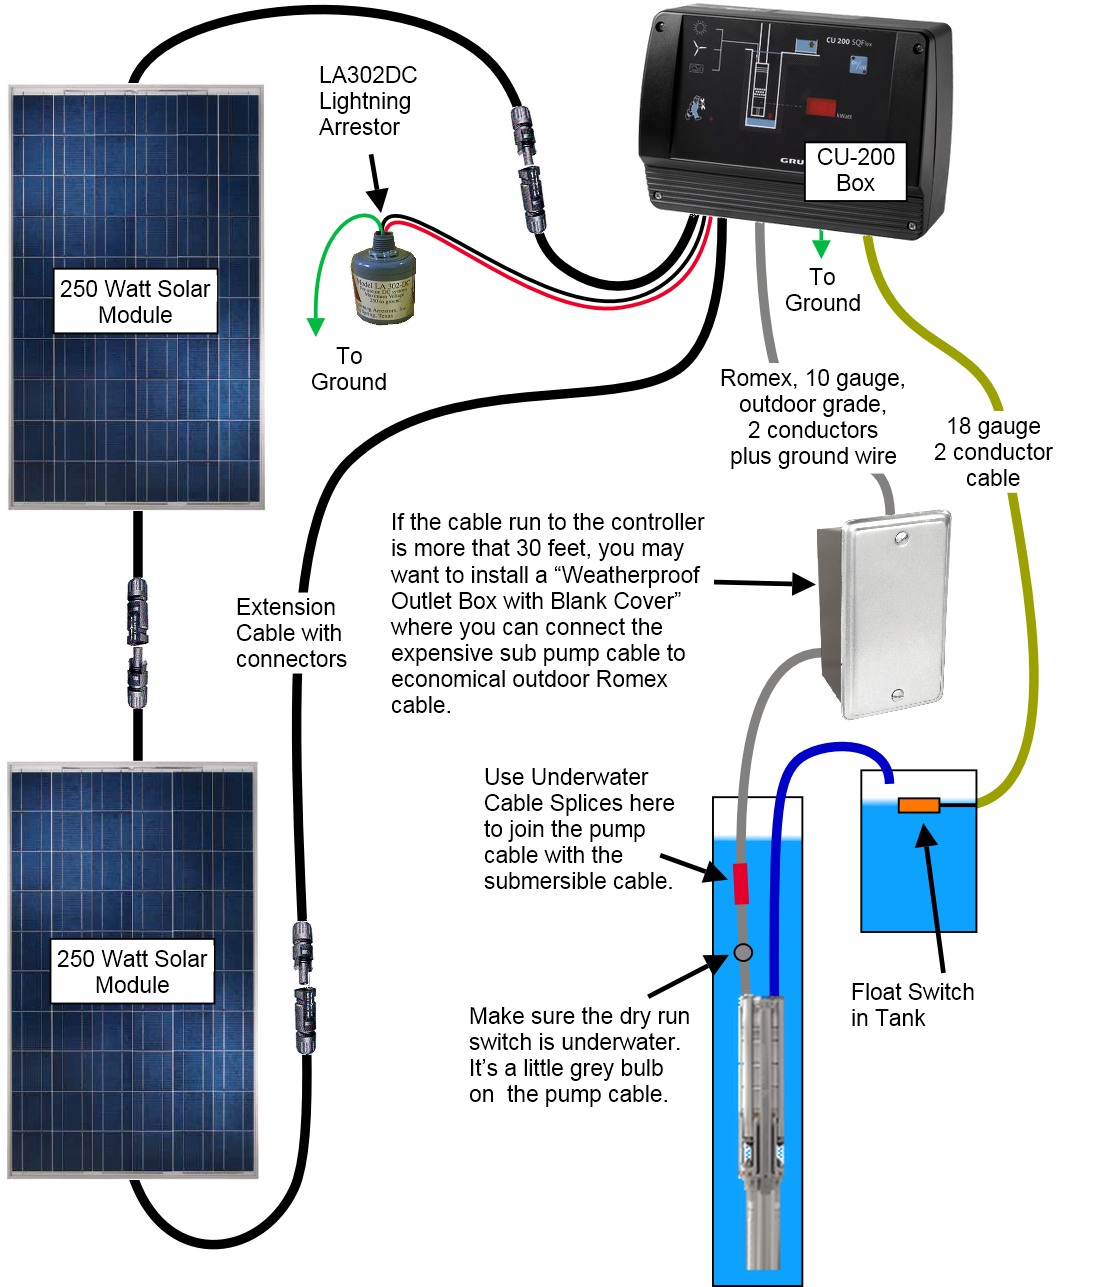 grundfos sqflex installation diagram?t=1422423383 grundfos sqflex solar water pump wiring diagram solar systems wiring diagrams at nearapp.co